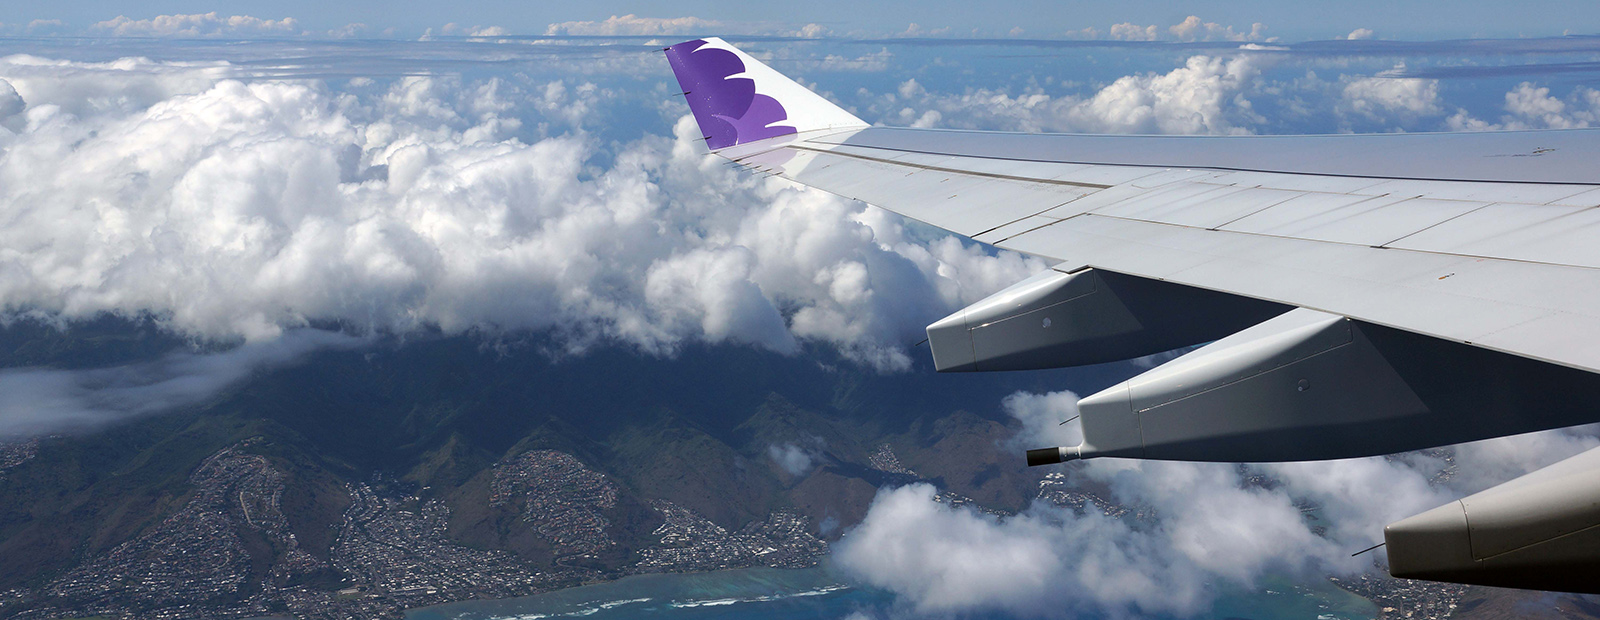 Kauai-Exotic-Estates-Hawaiian-Airlines-Airplane